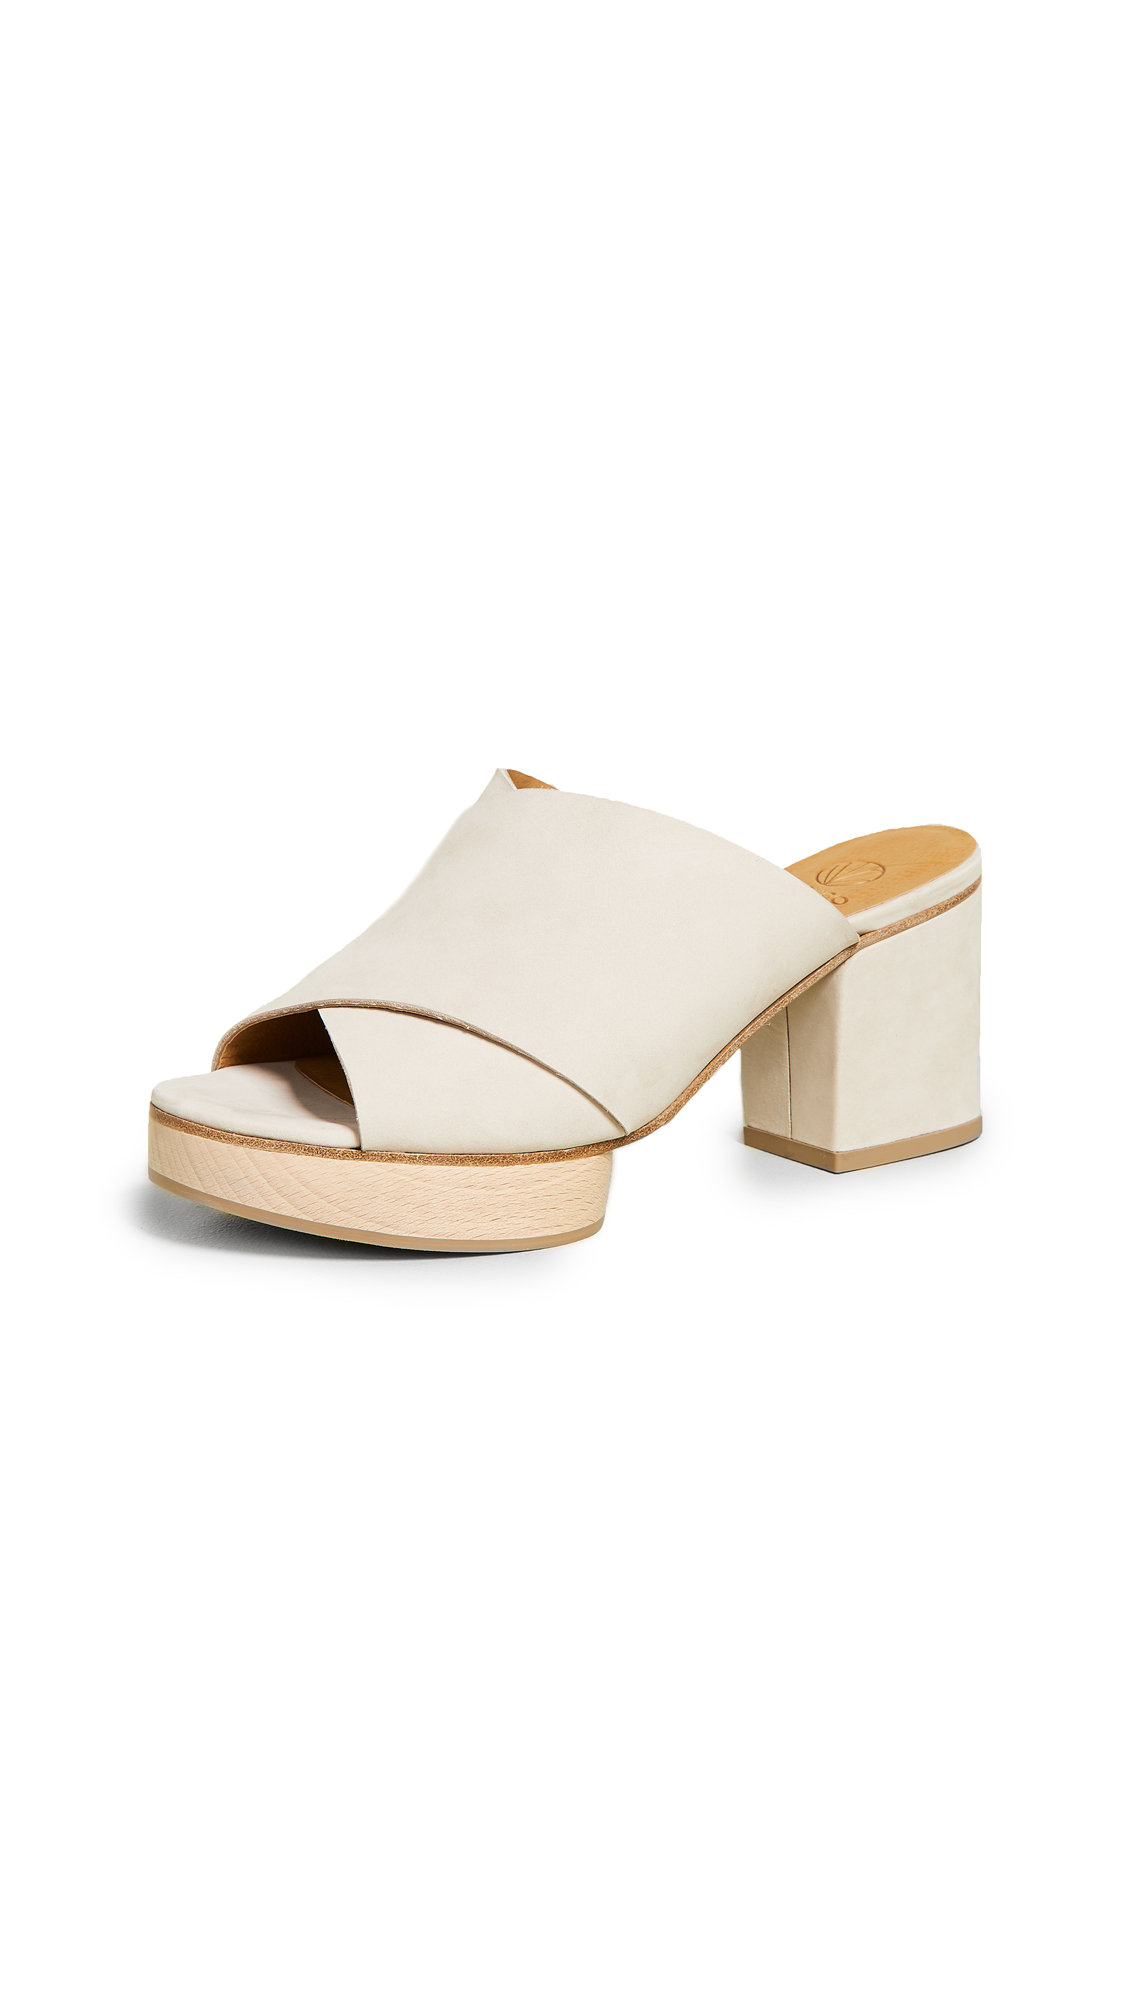 Coclico Shoes Richie 50 Platform Mules - Lyon Igloo